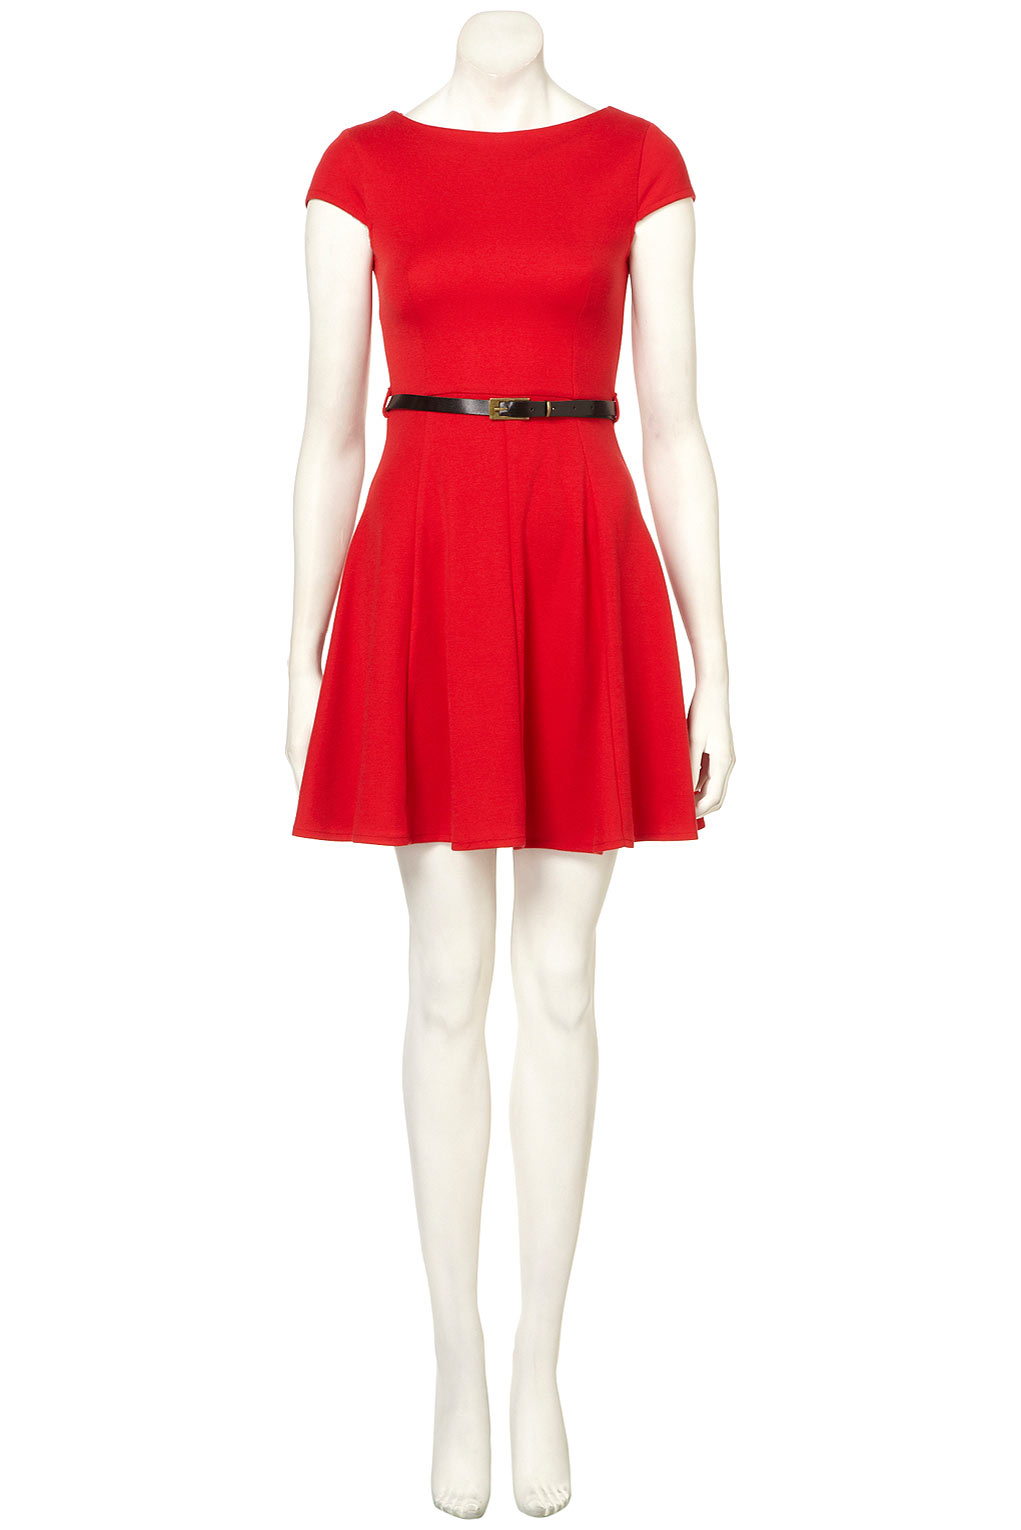 Topshop Sleeveless Skater Dress By Rare In Red Lyst